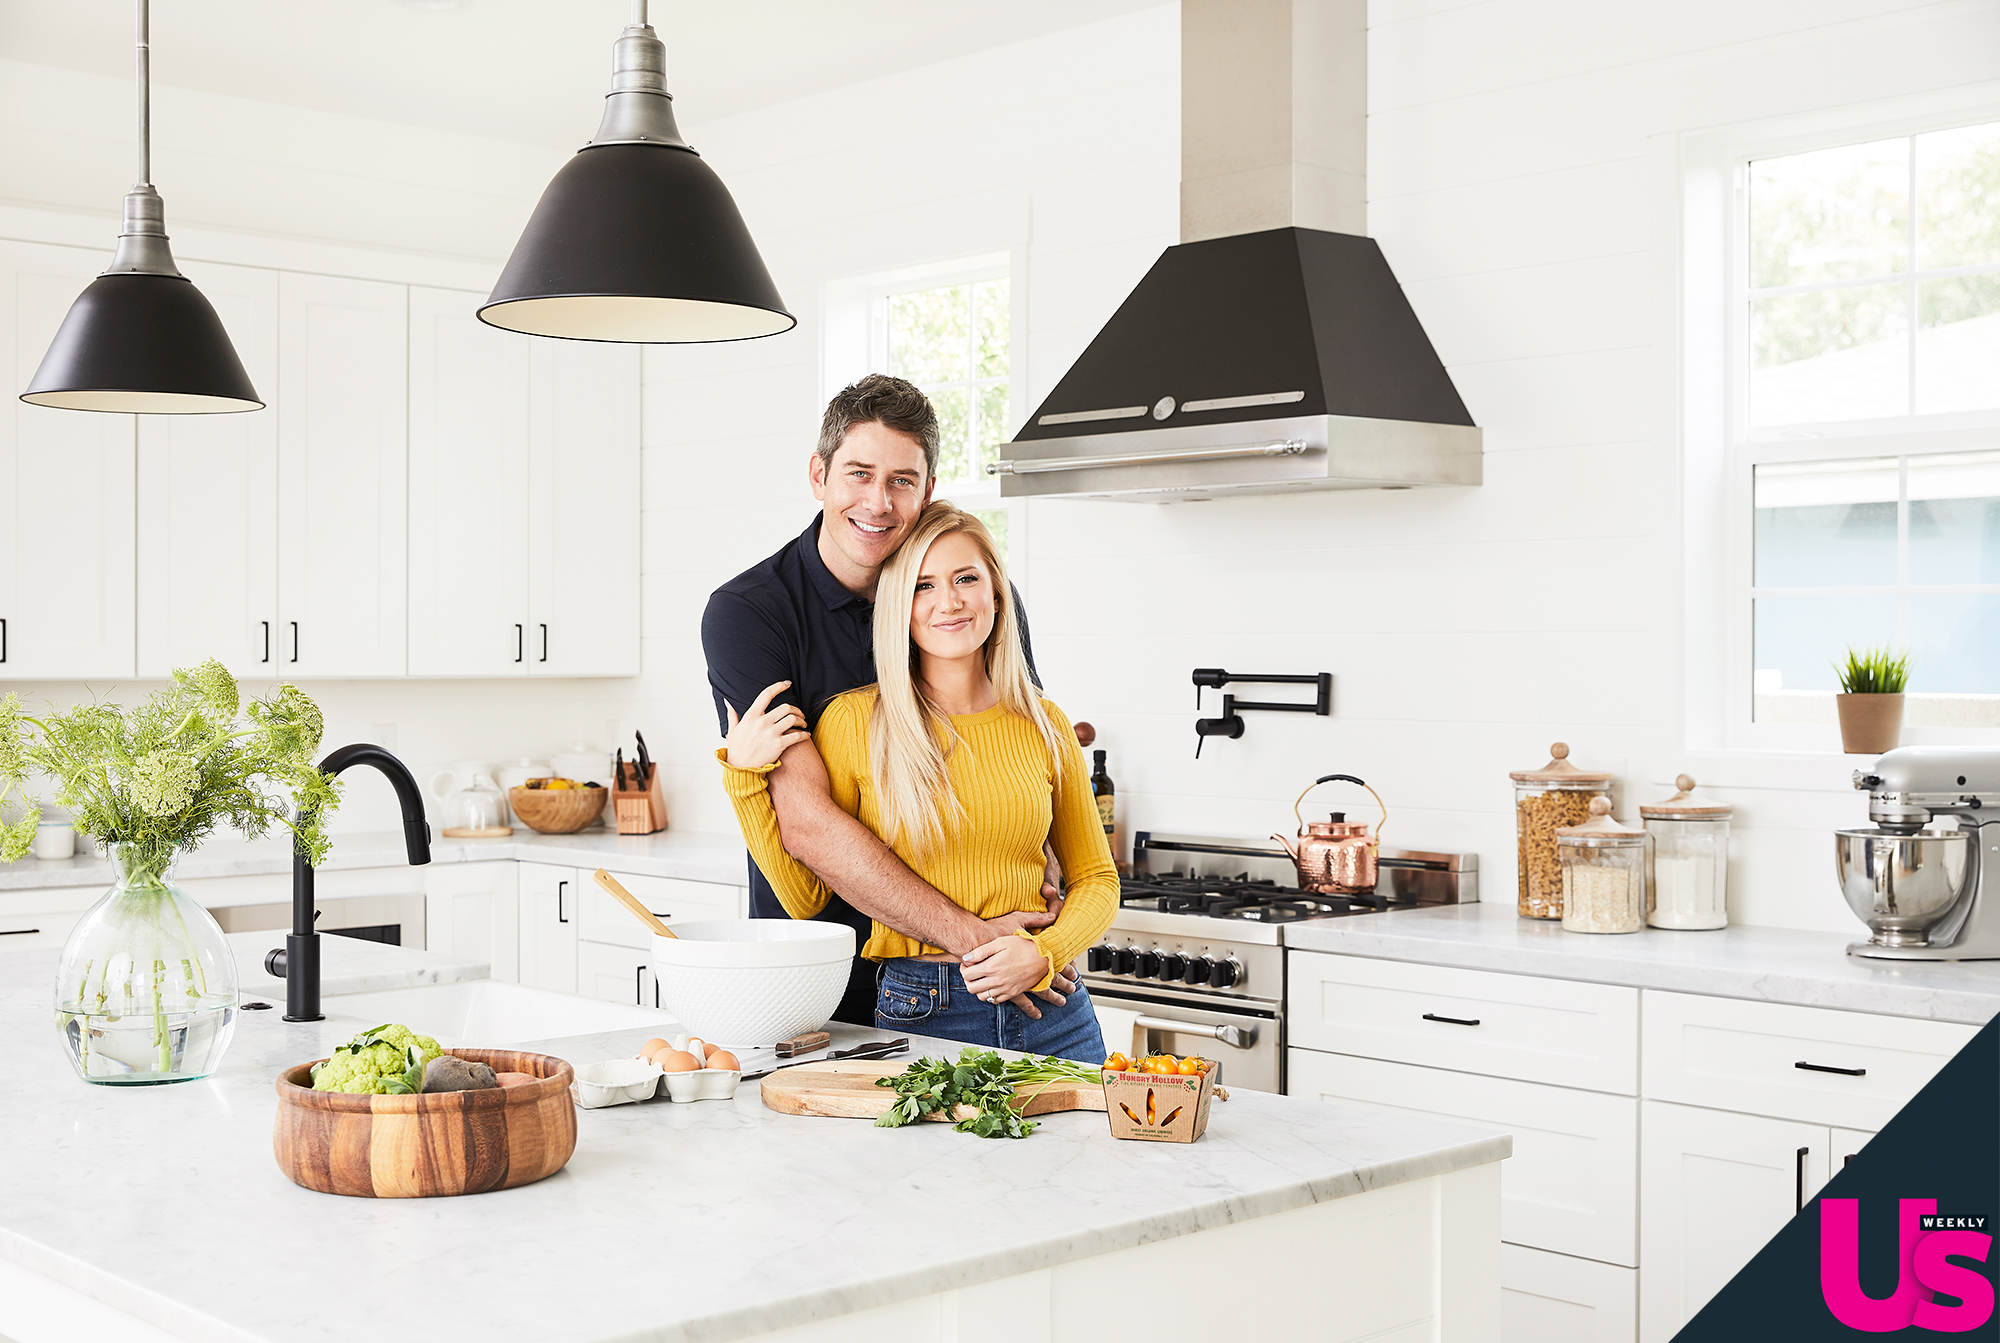 """Arie Luyendyk Jr Lauren Burnham New Home - """"What we love most about our kitchen is the gray marble mixed with the all-white cabinets and shiplap backsplash,"""" the salesperson says."""